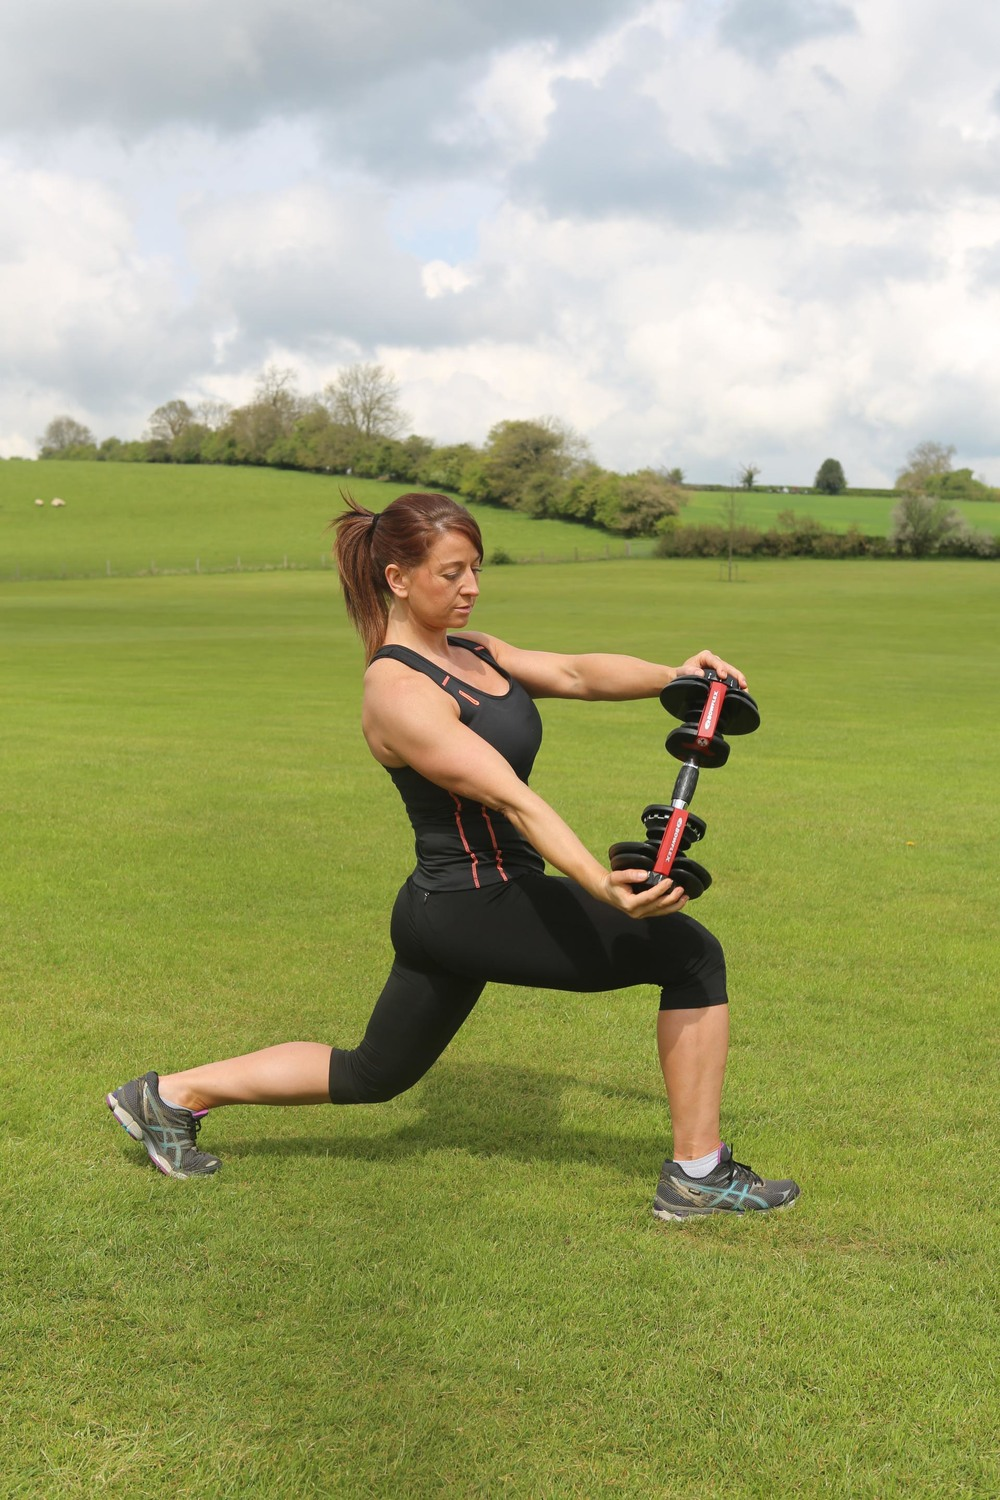 personaltrainingberkhamsted